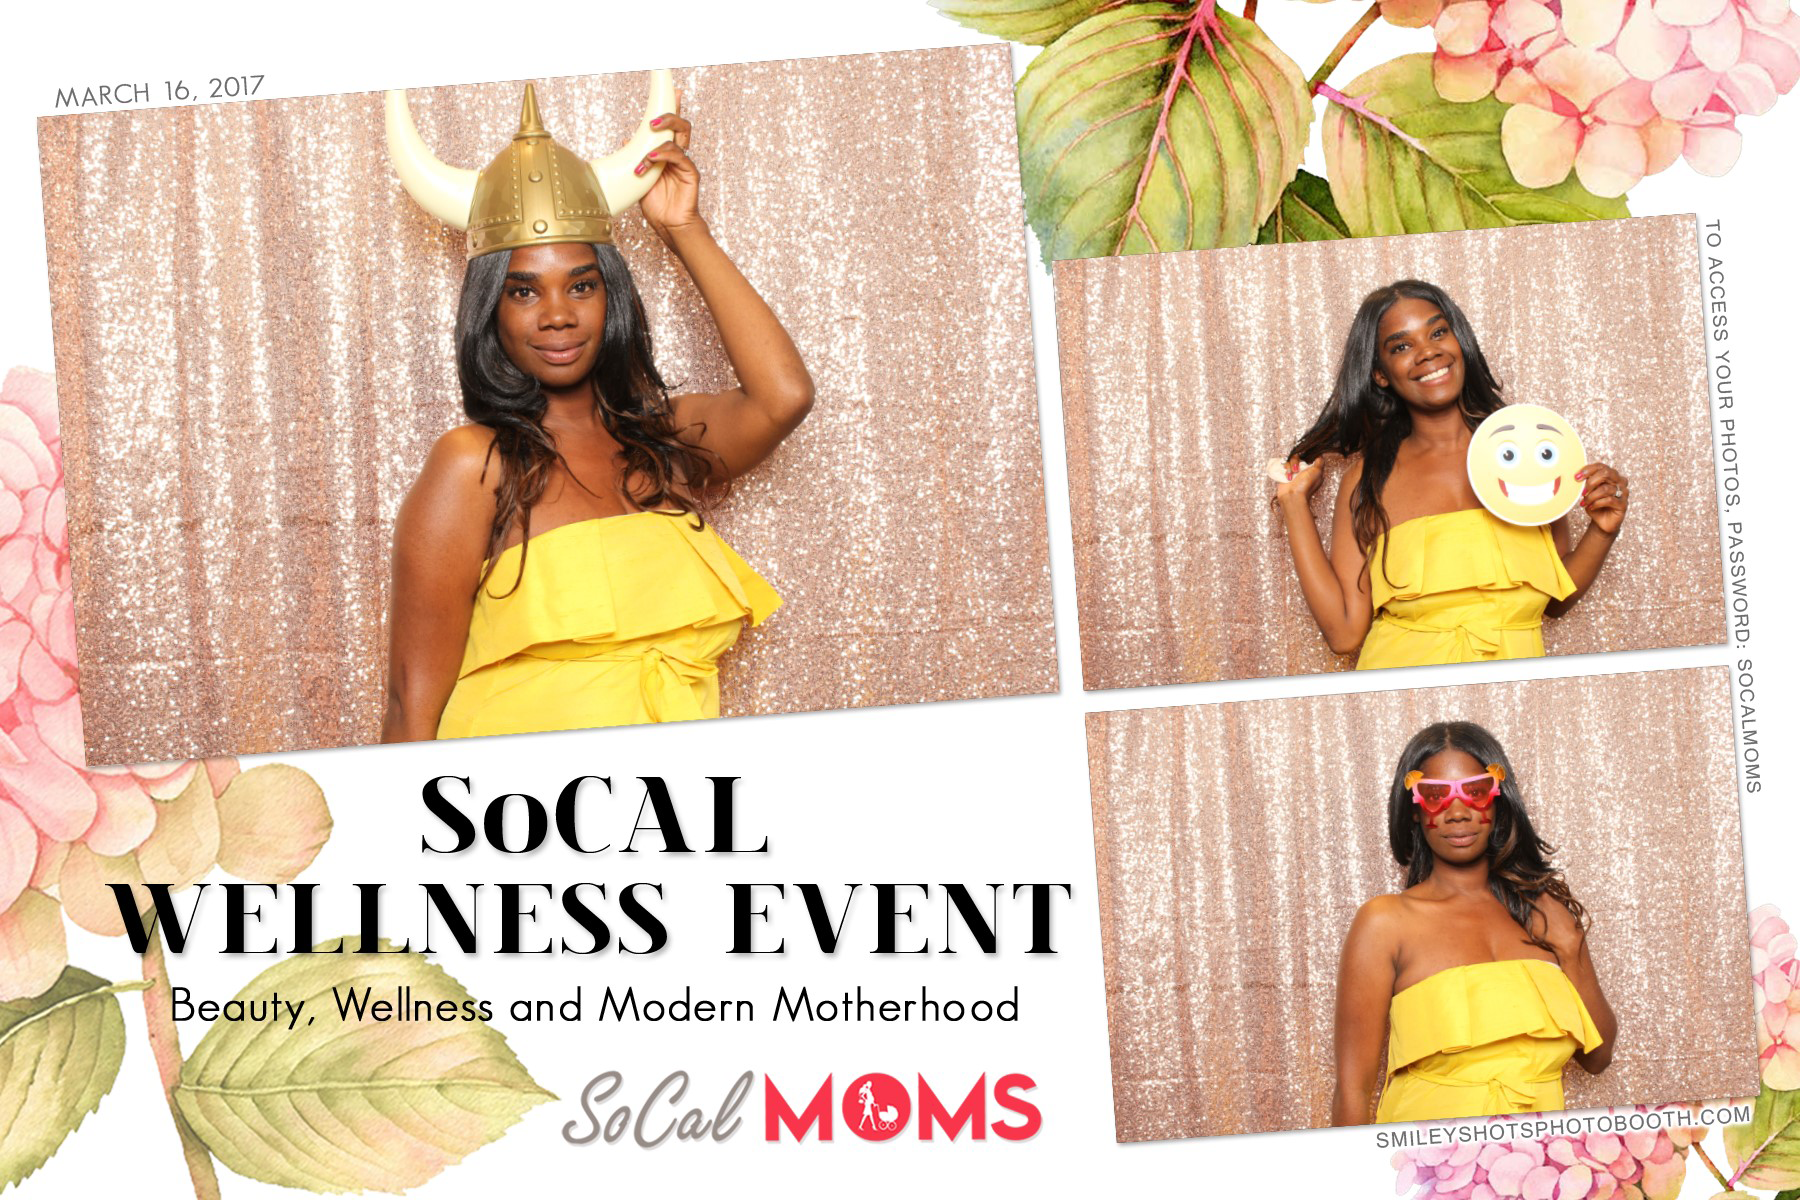 Socal Wellness Event Socal Moms Smiley Shots Photo Booth Photobooth (43).png